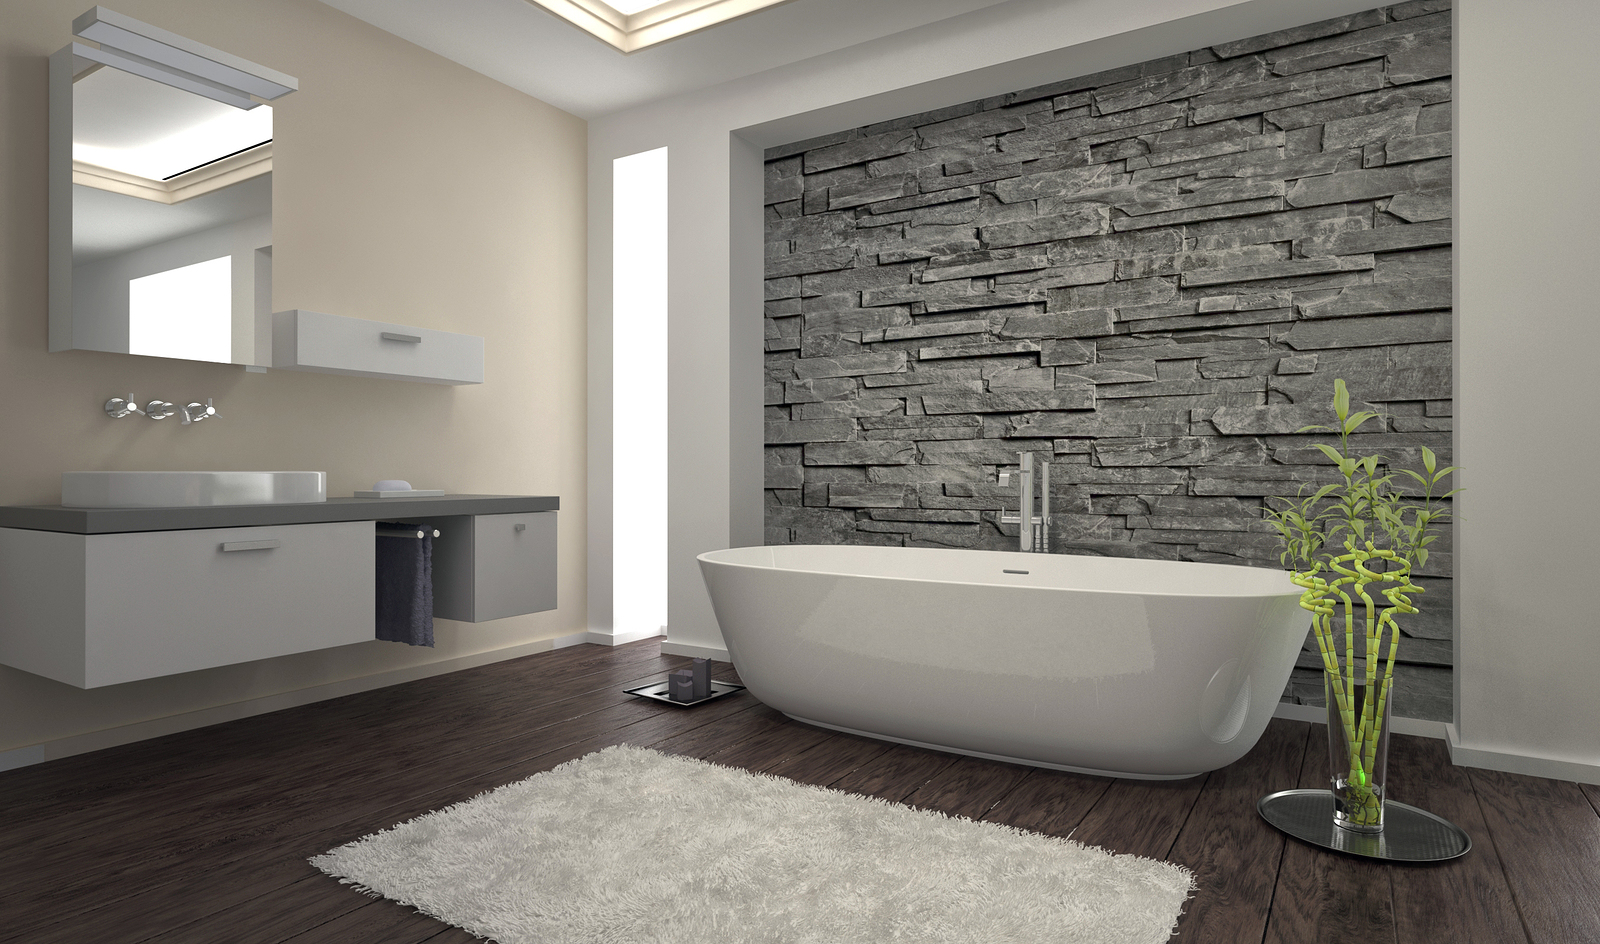 brave bathroom trends in 2015 | Design Online